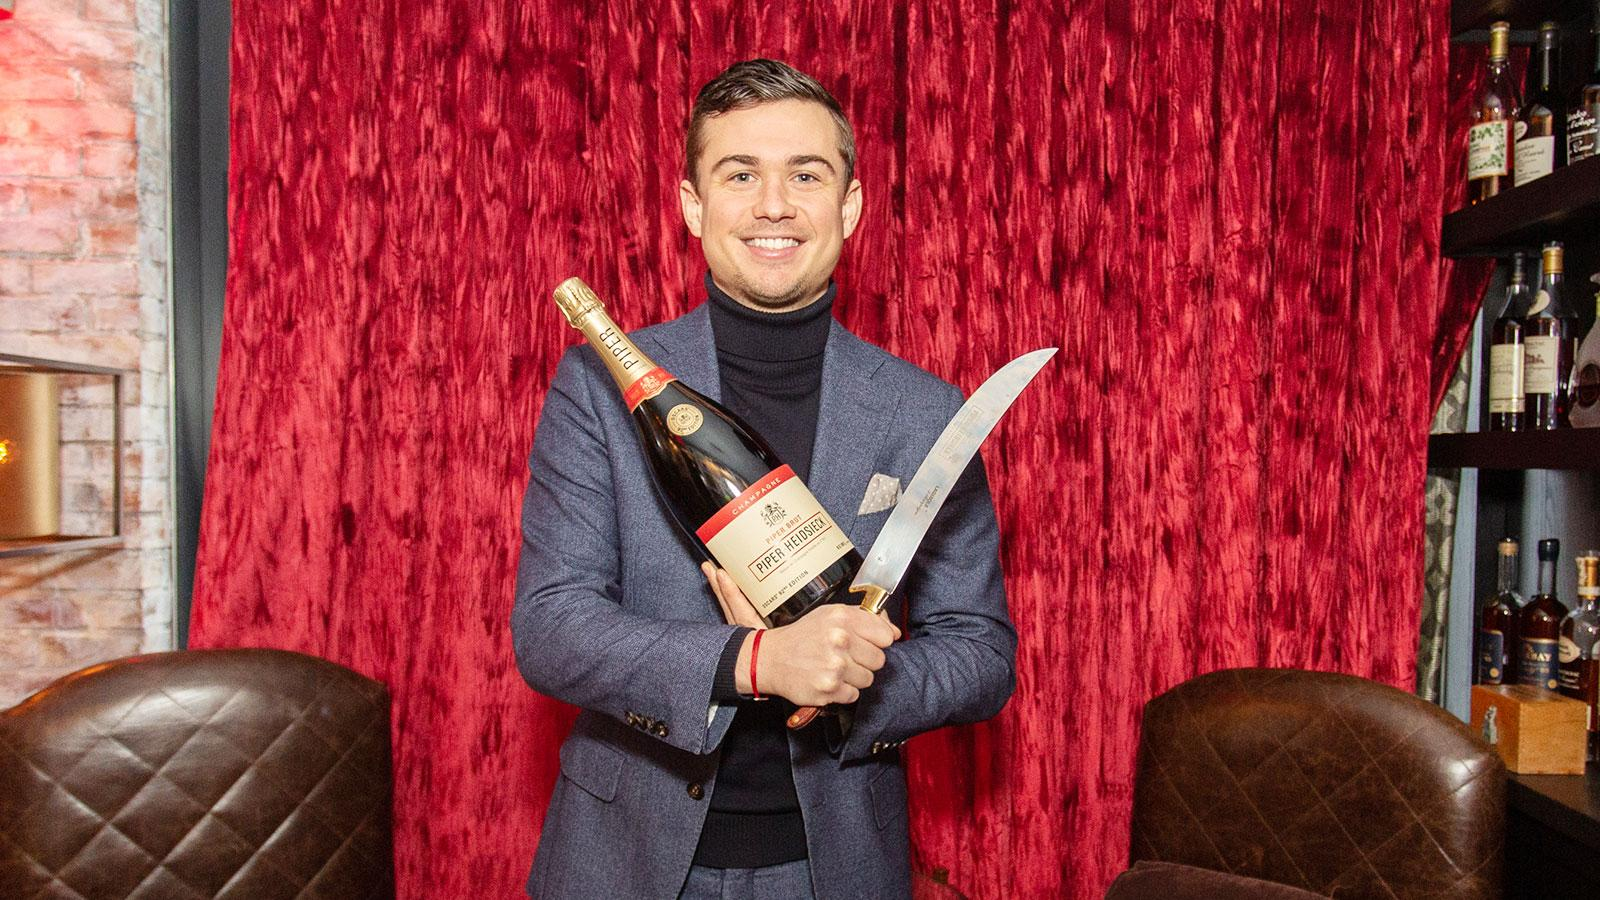 Piper-Heidsieck's Jonathan Boulangeat with the retro bottle and saber